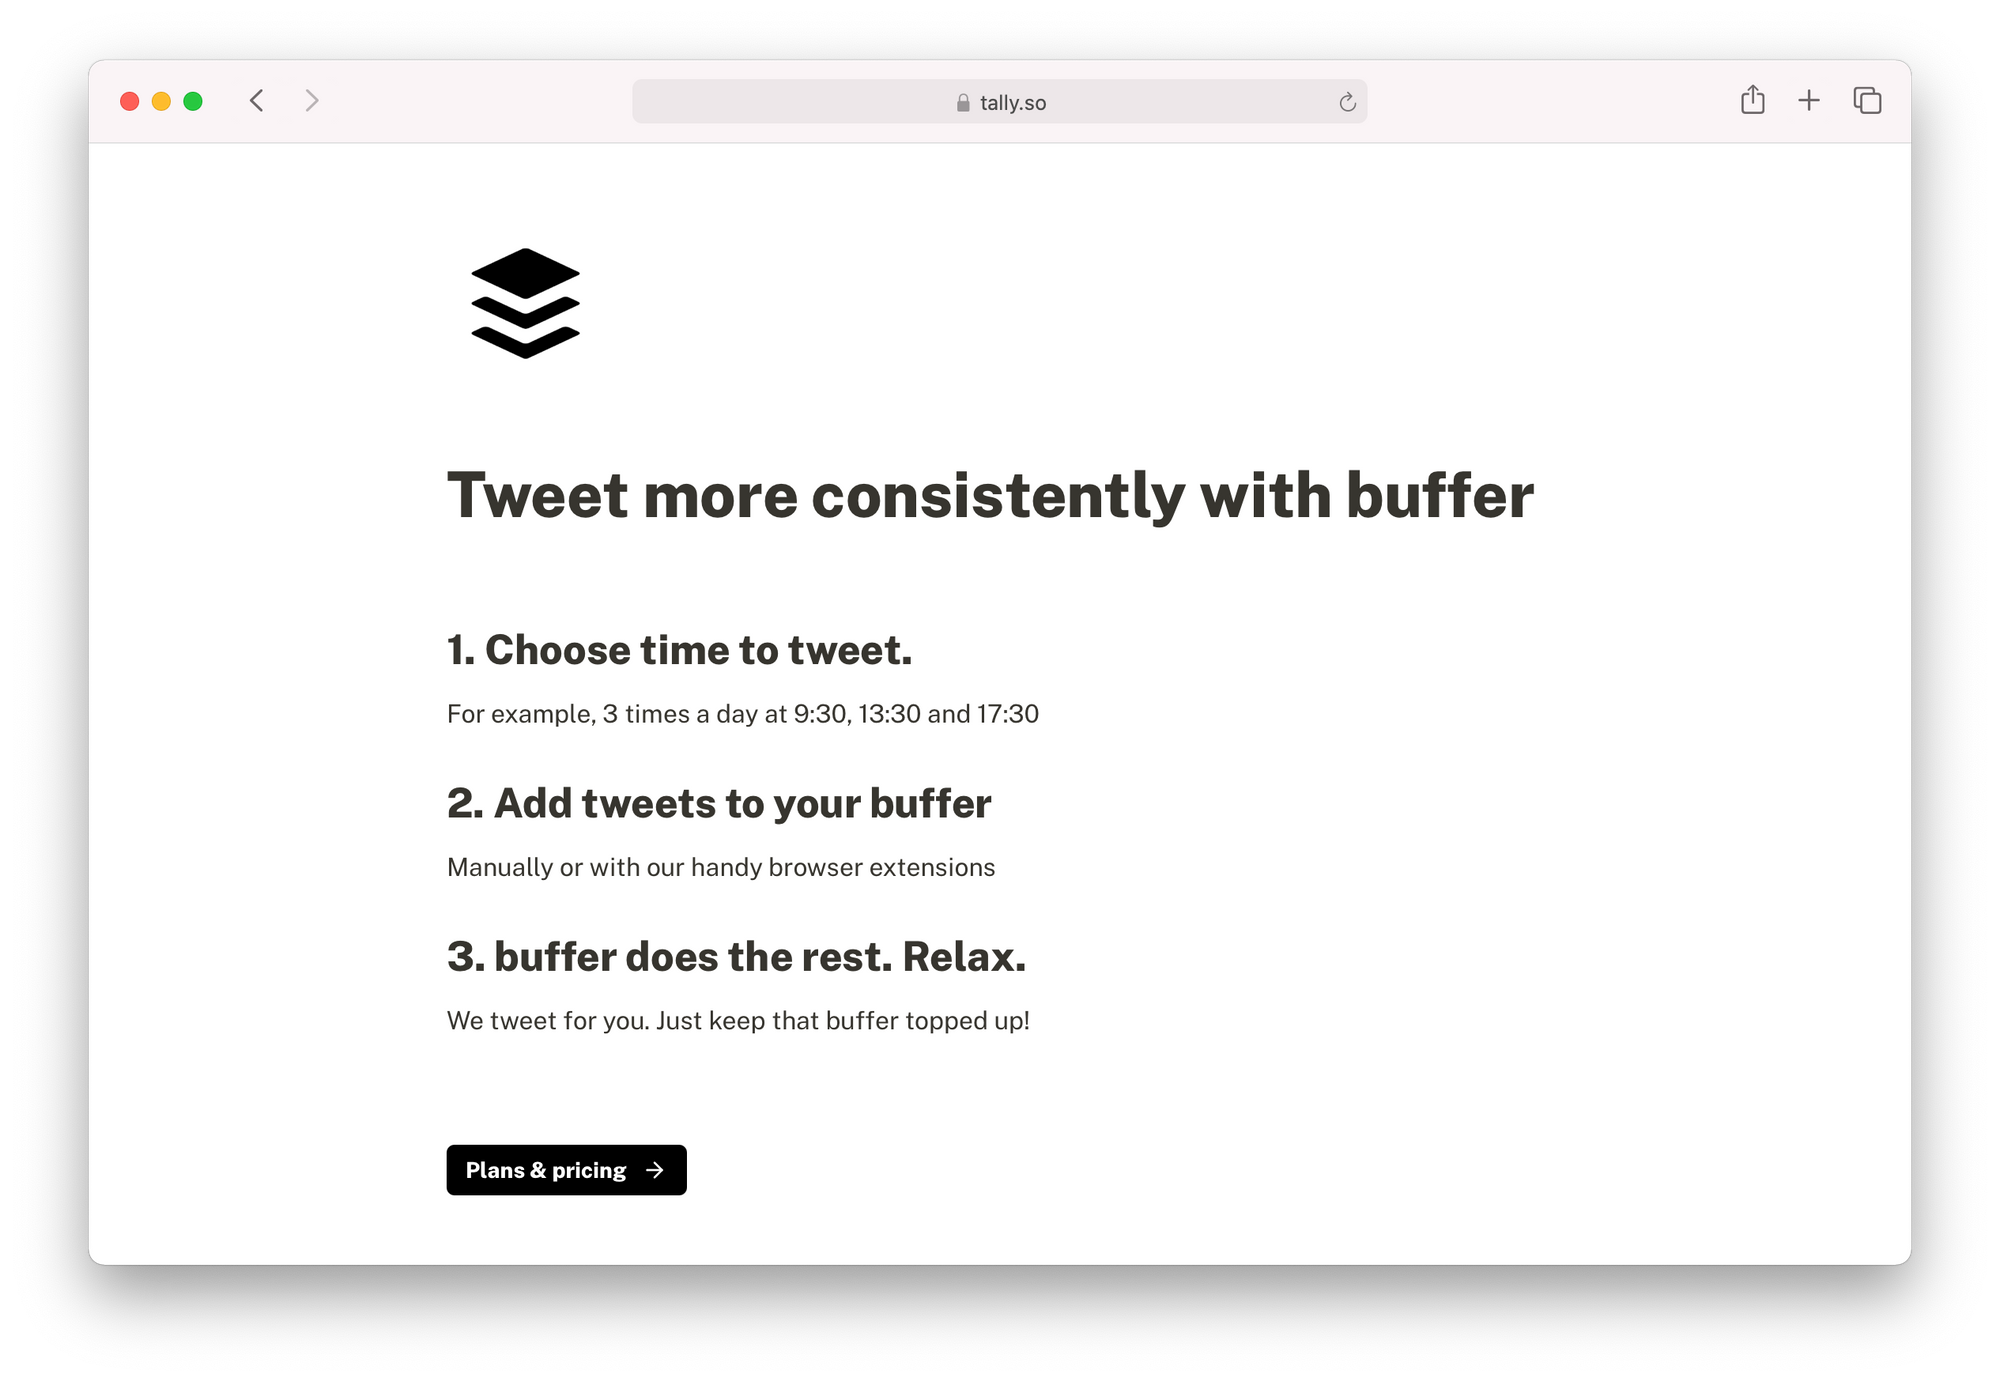 Landing page used to launch Buffer